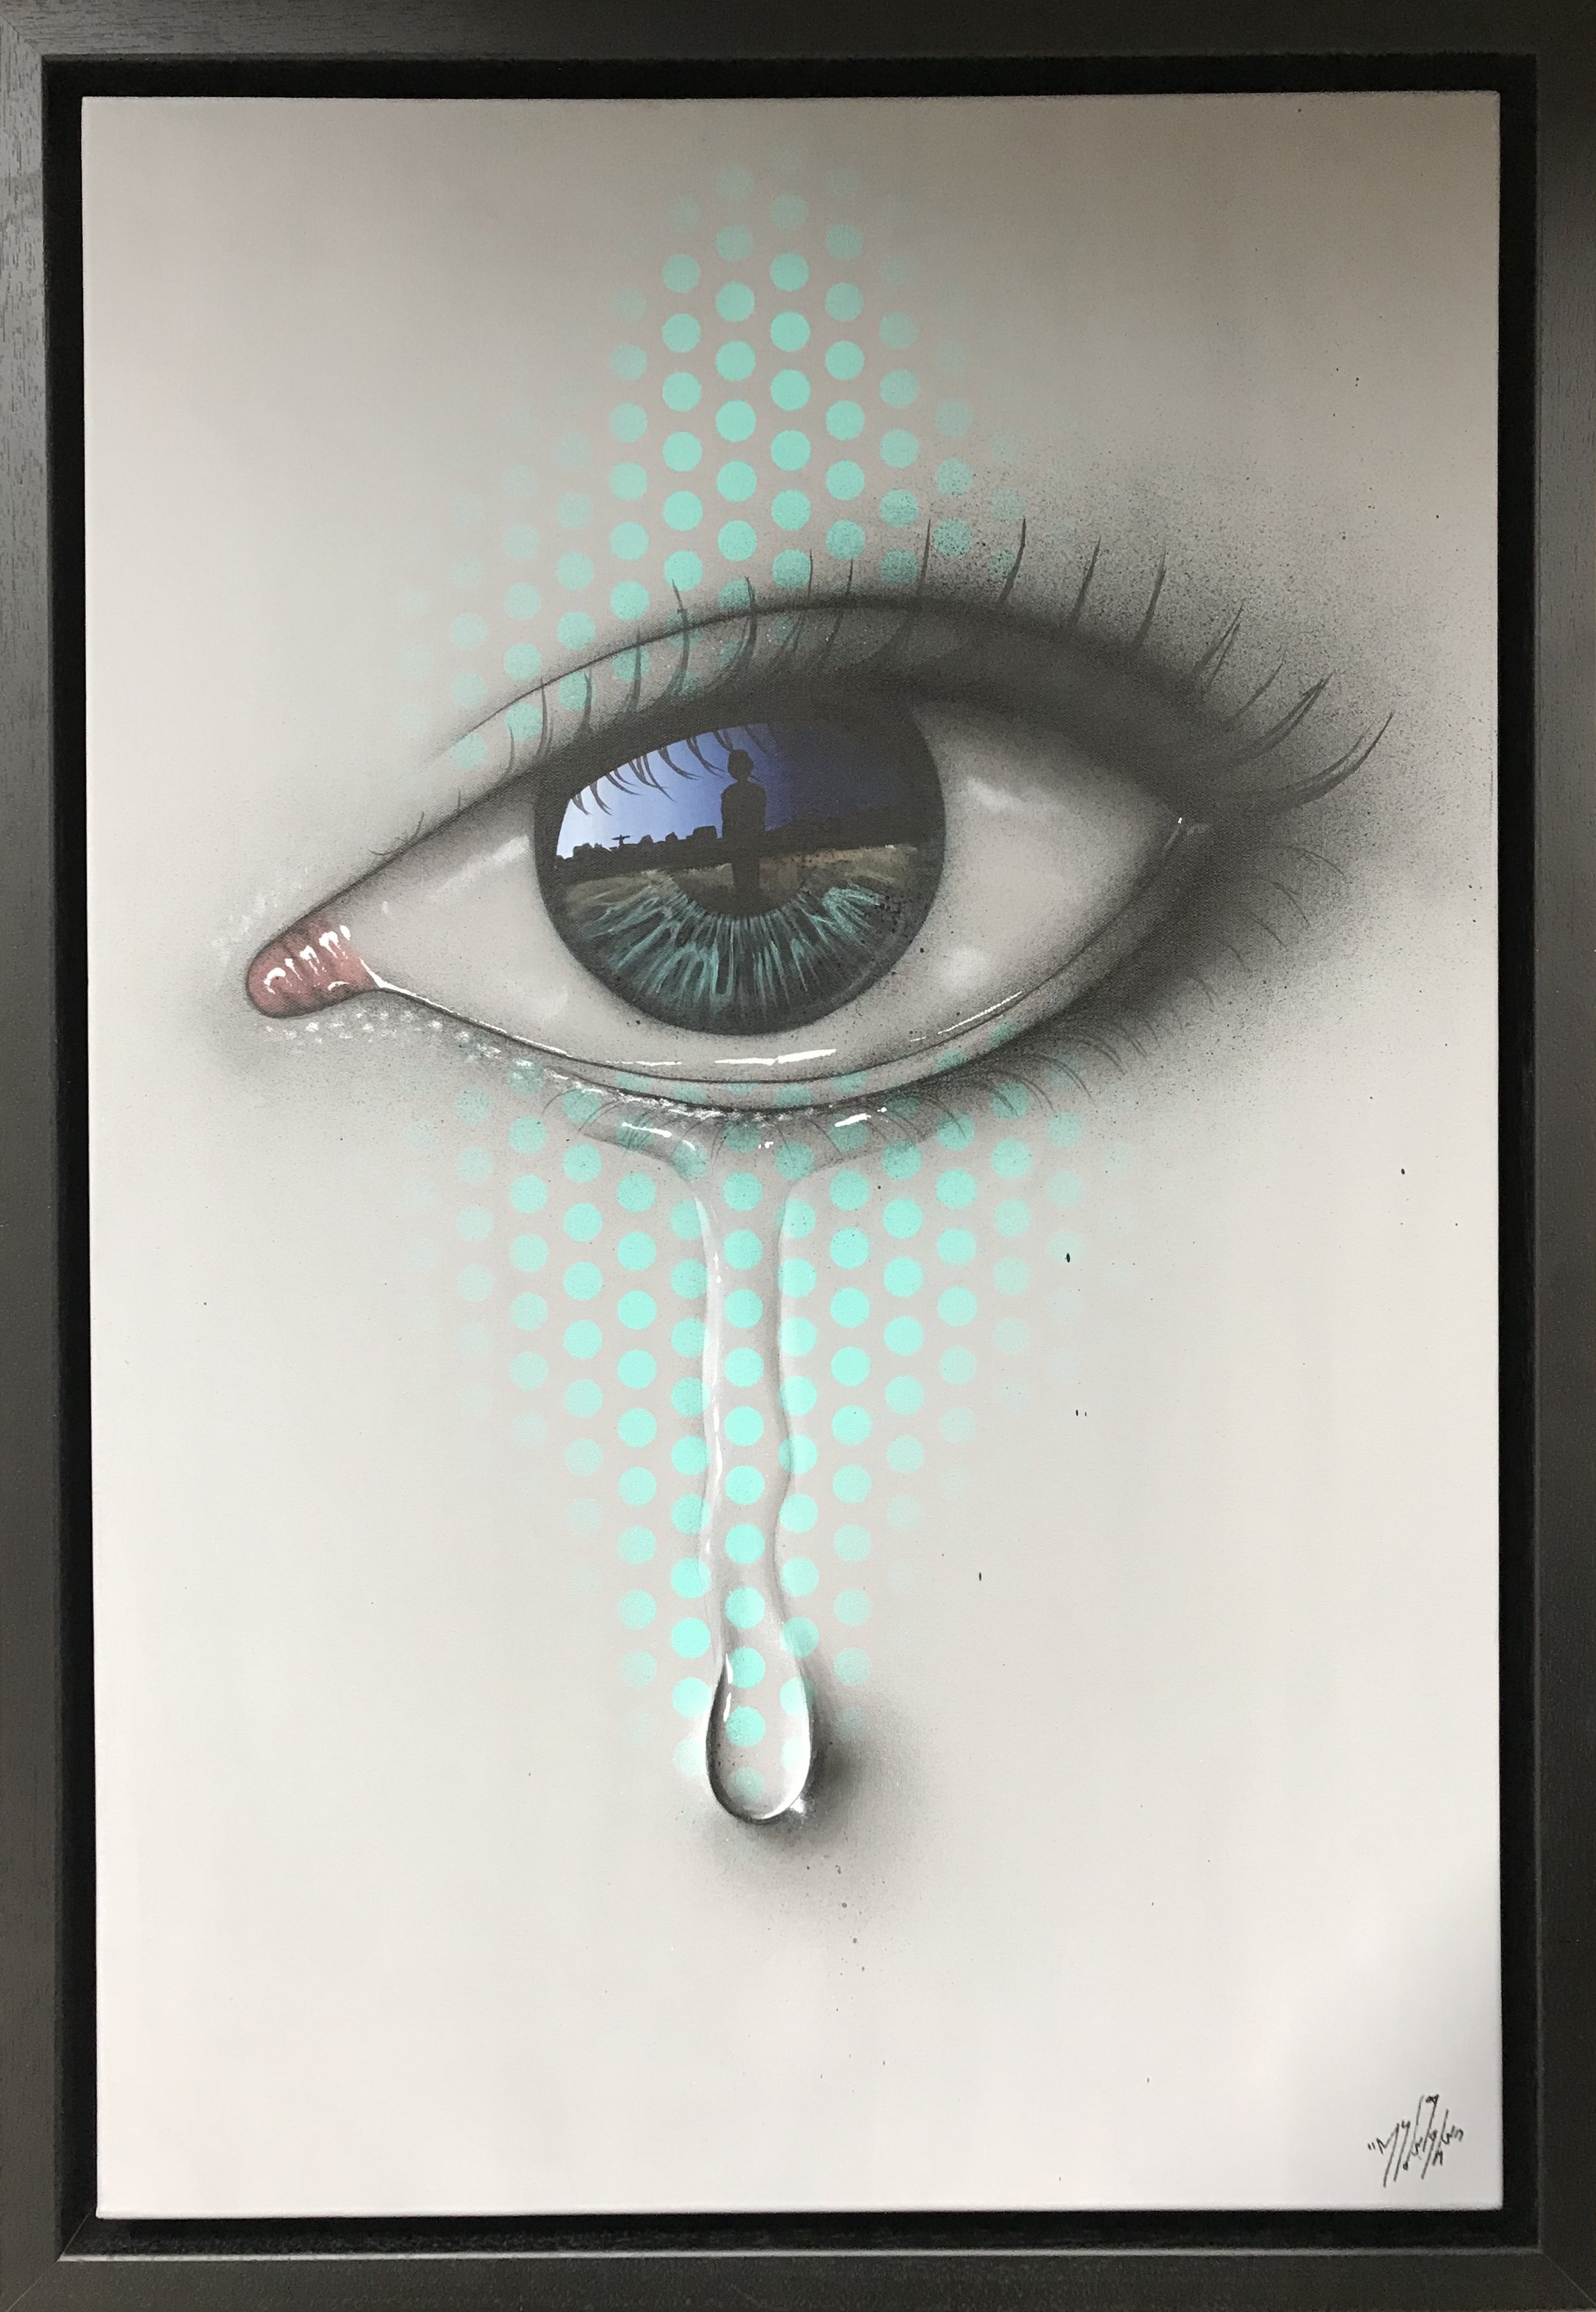 My Dog Sighs | You must of know